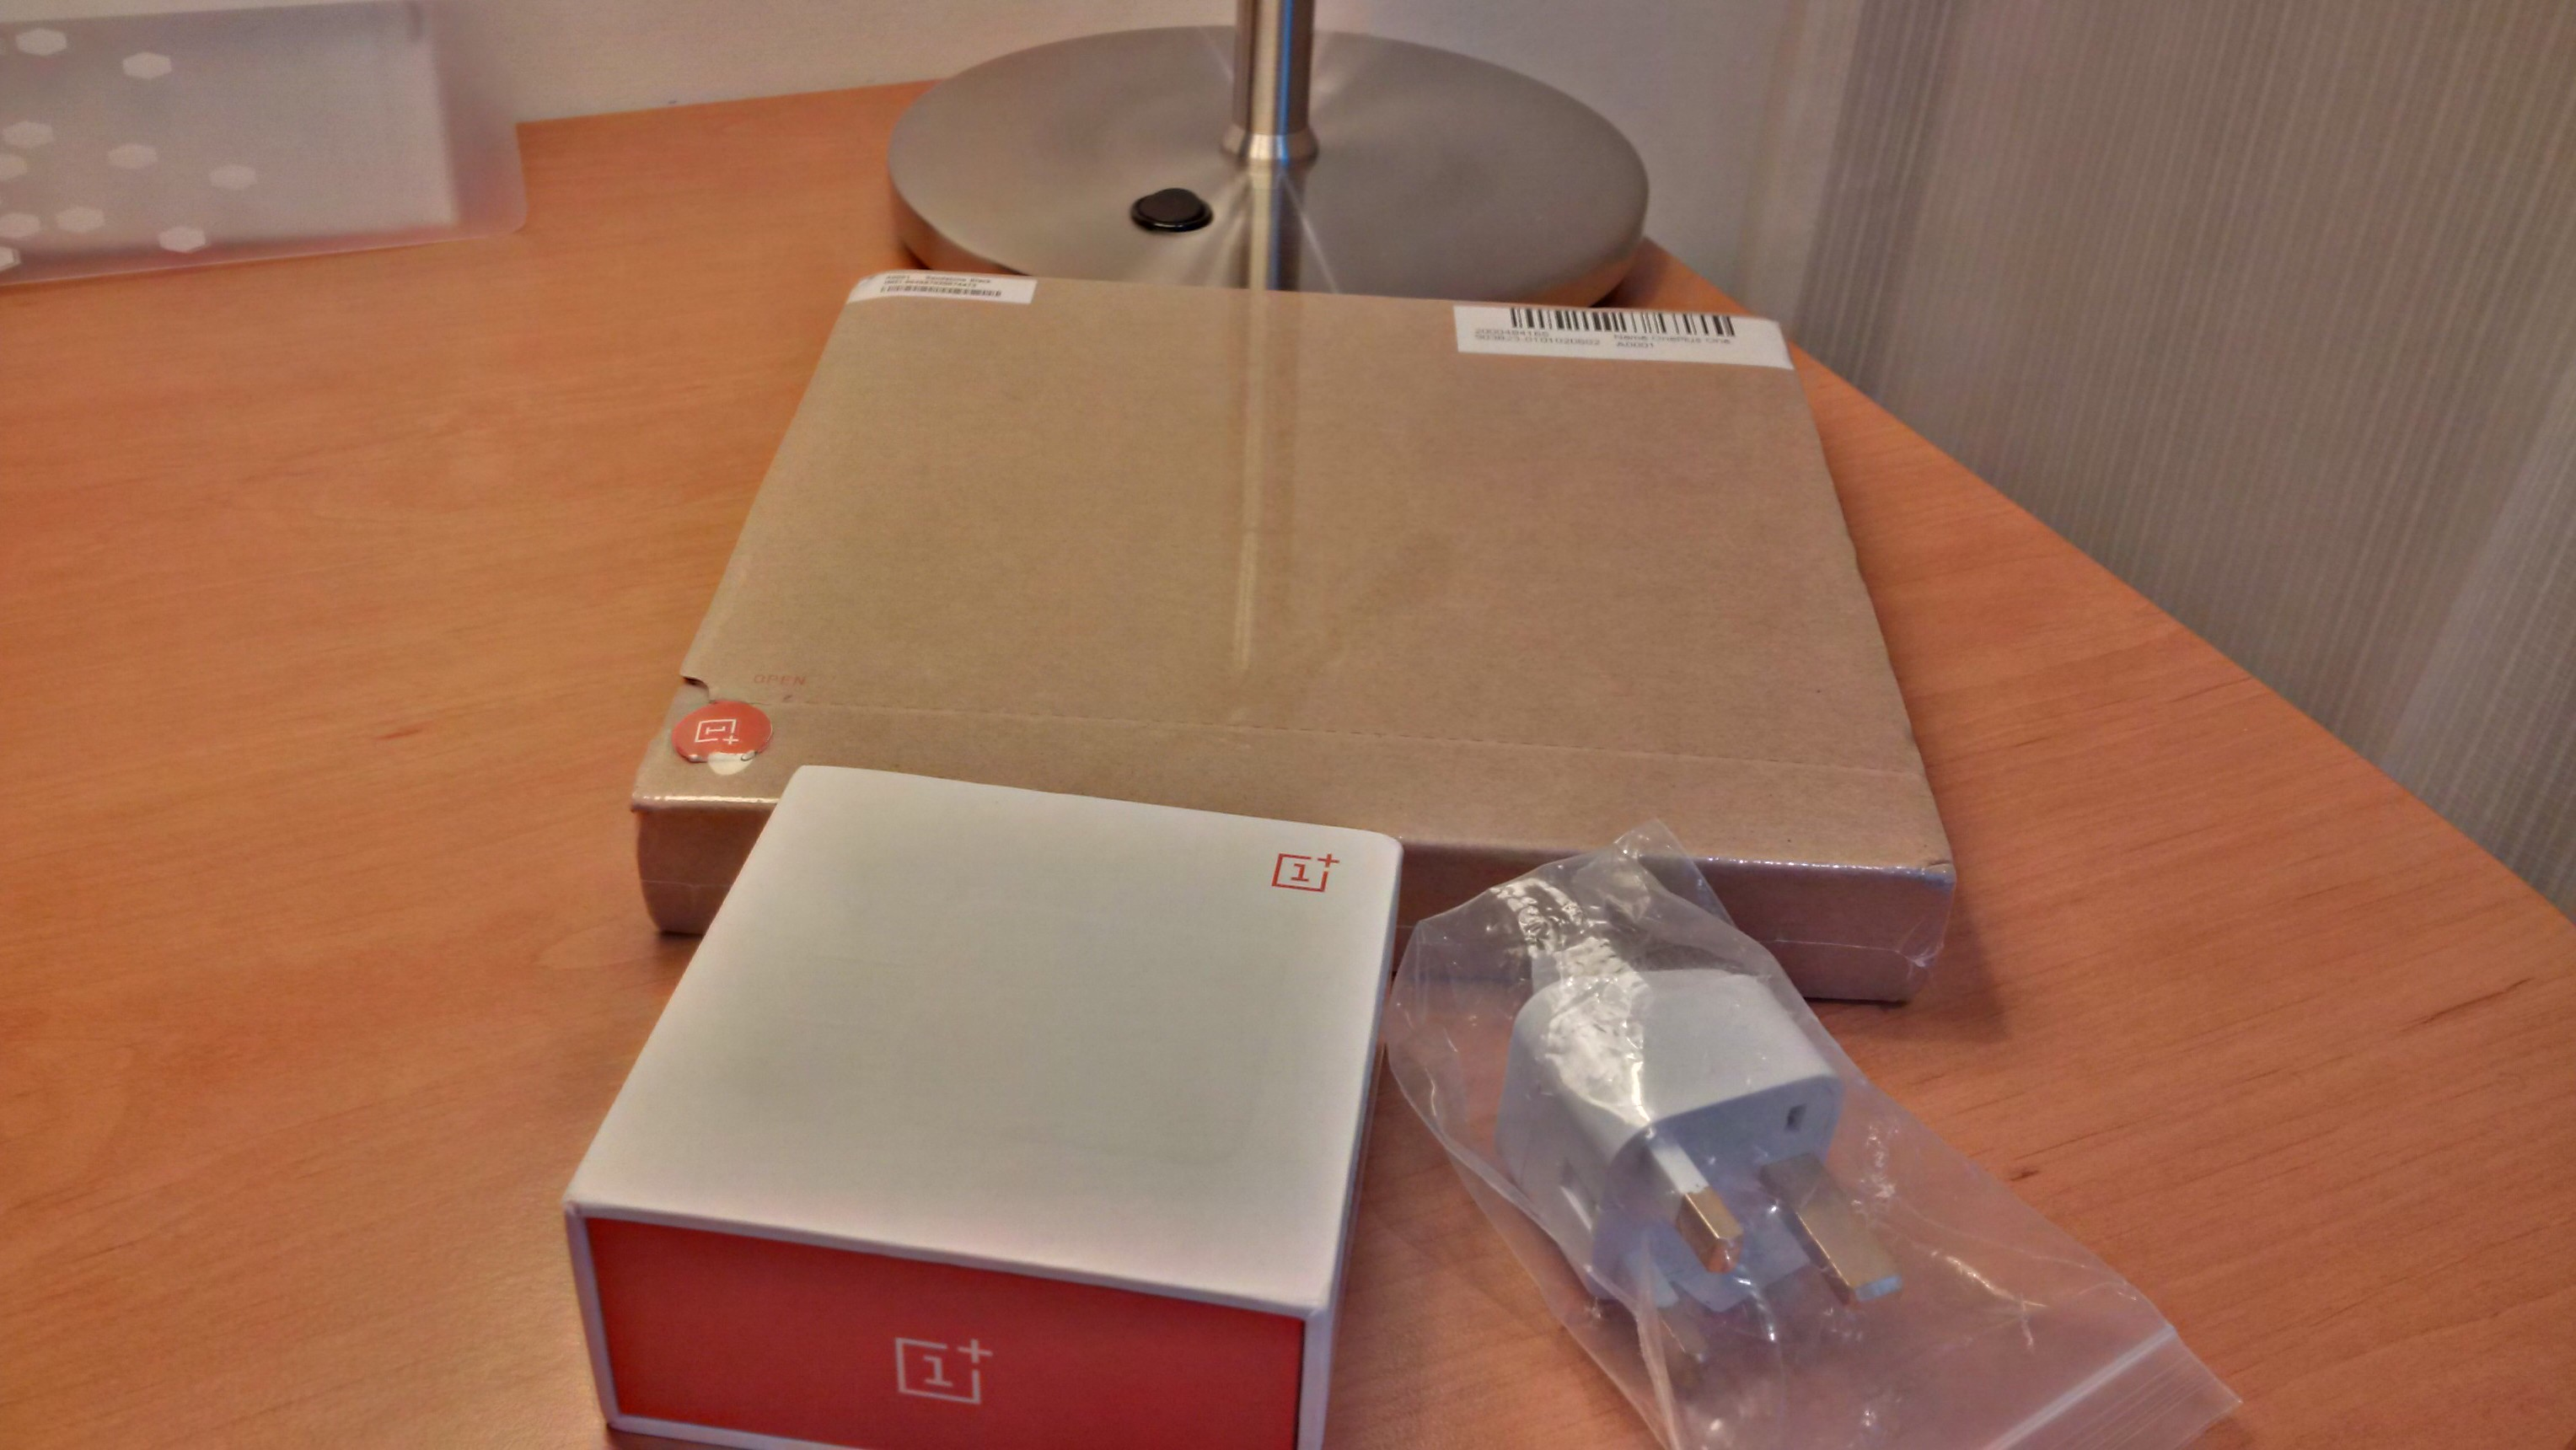 OnePlus One – First Impressions